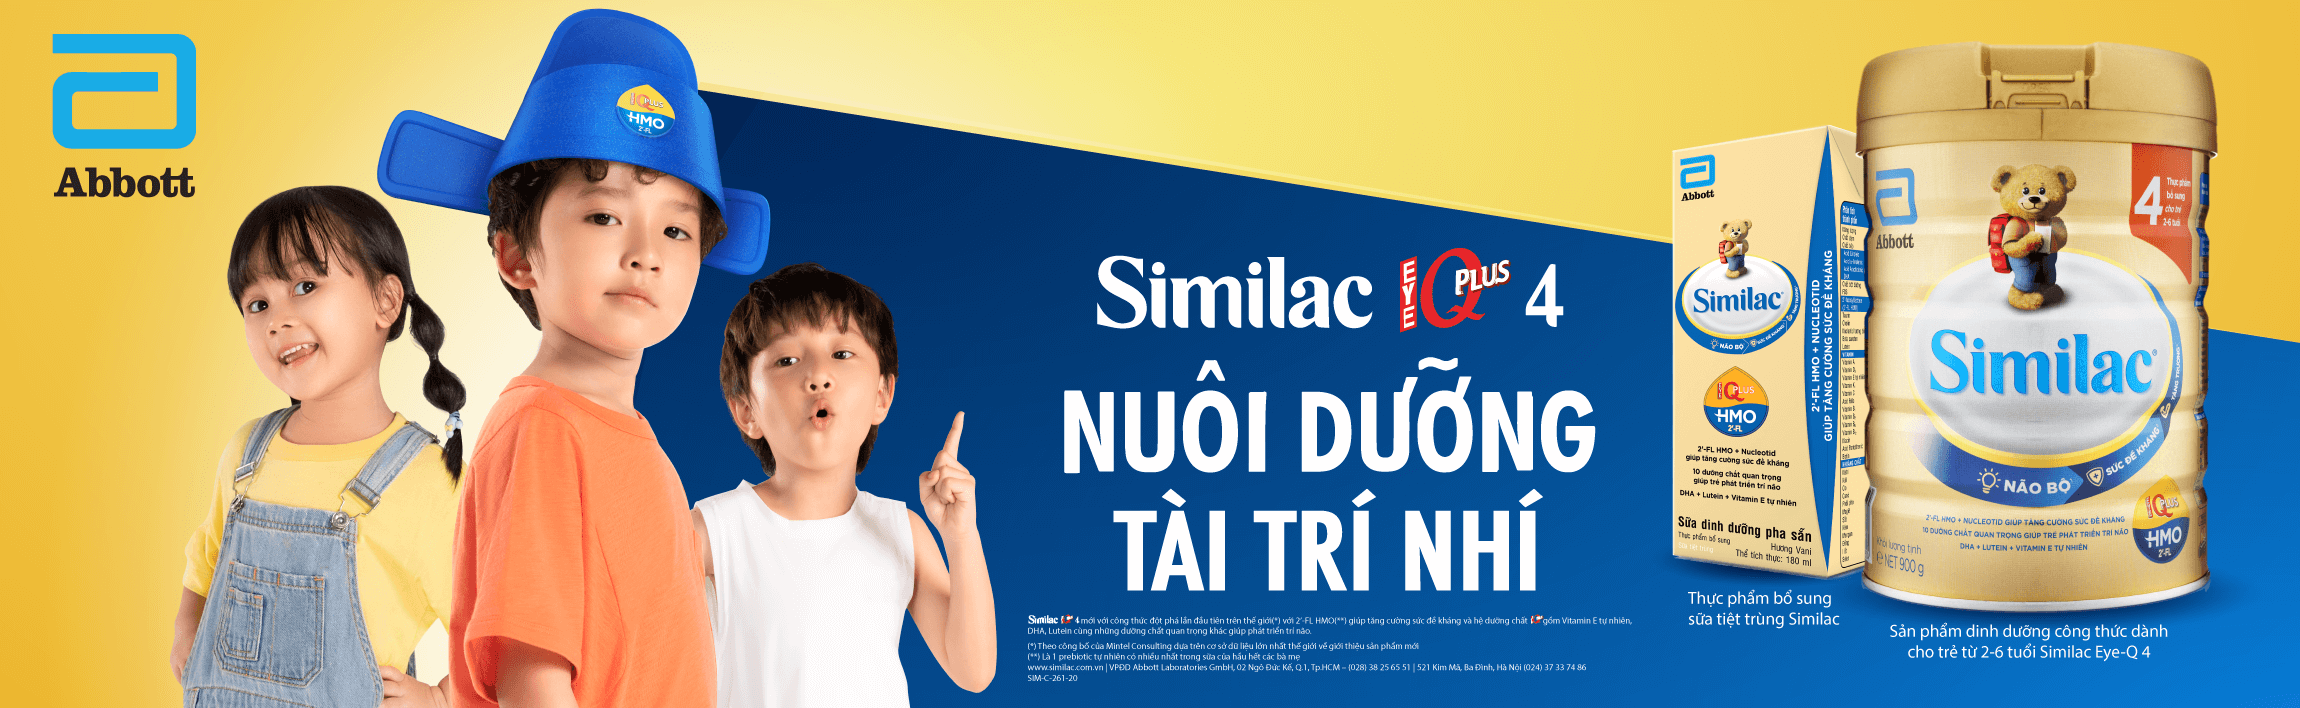 Similac Banner T9